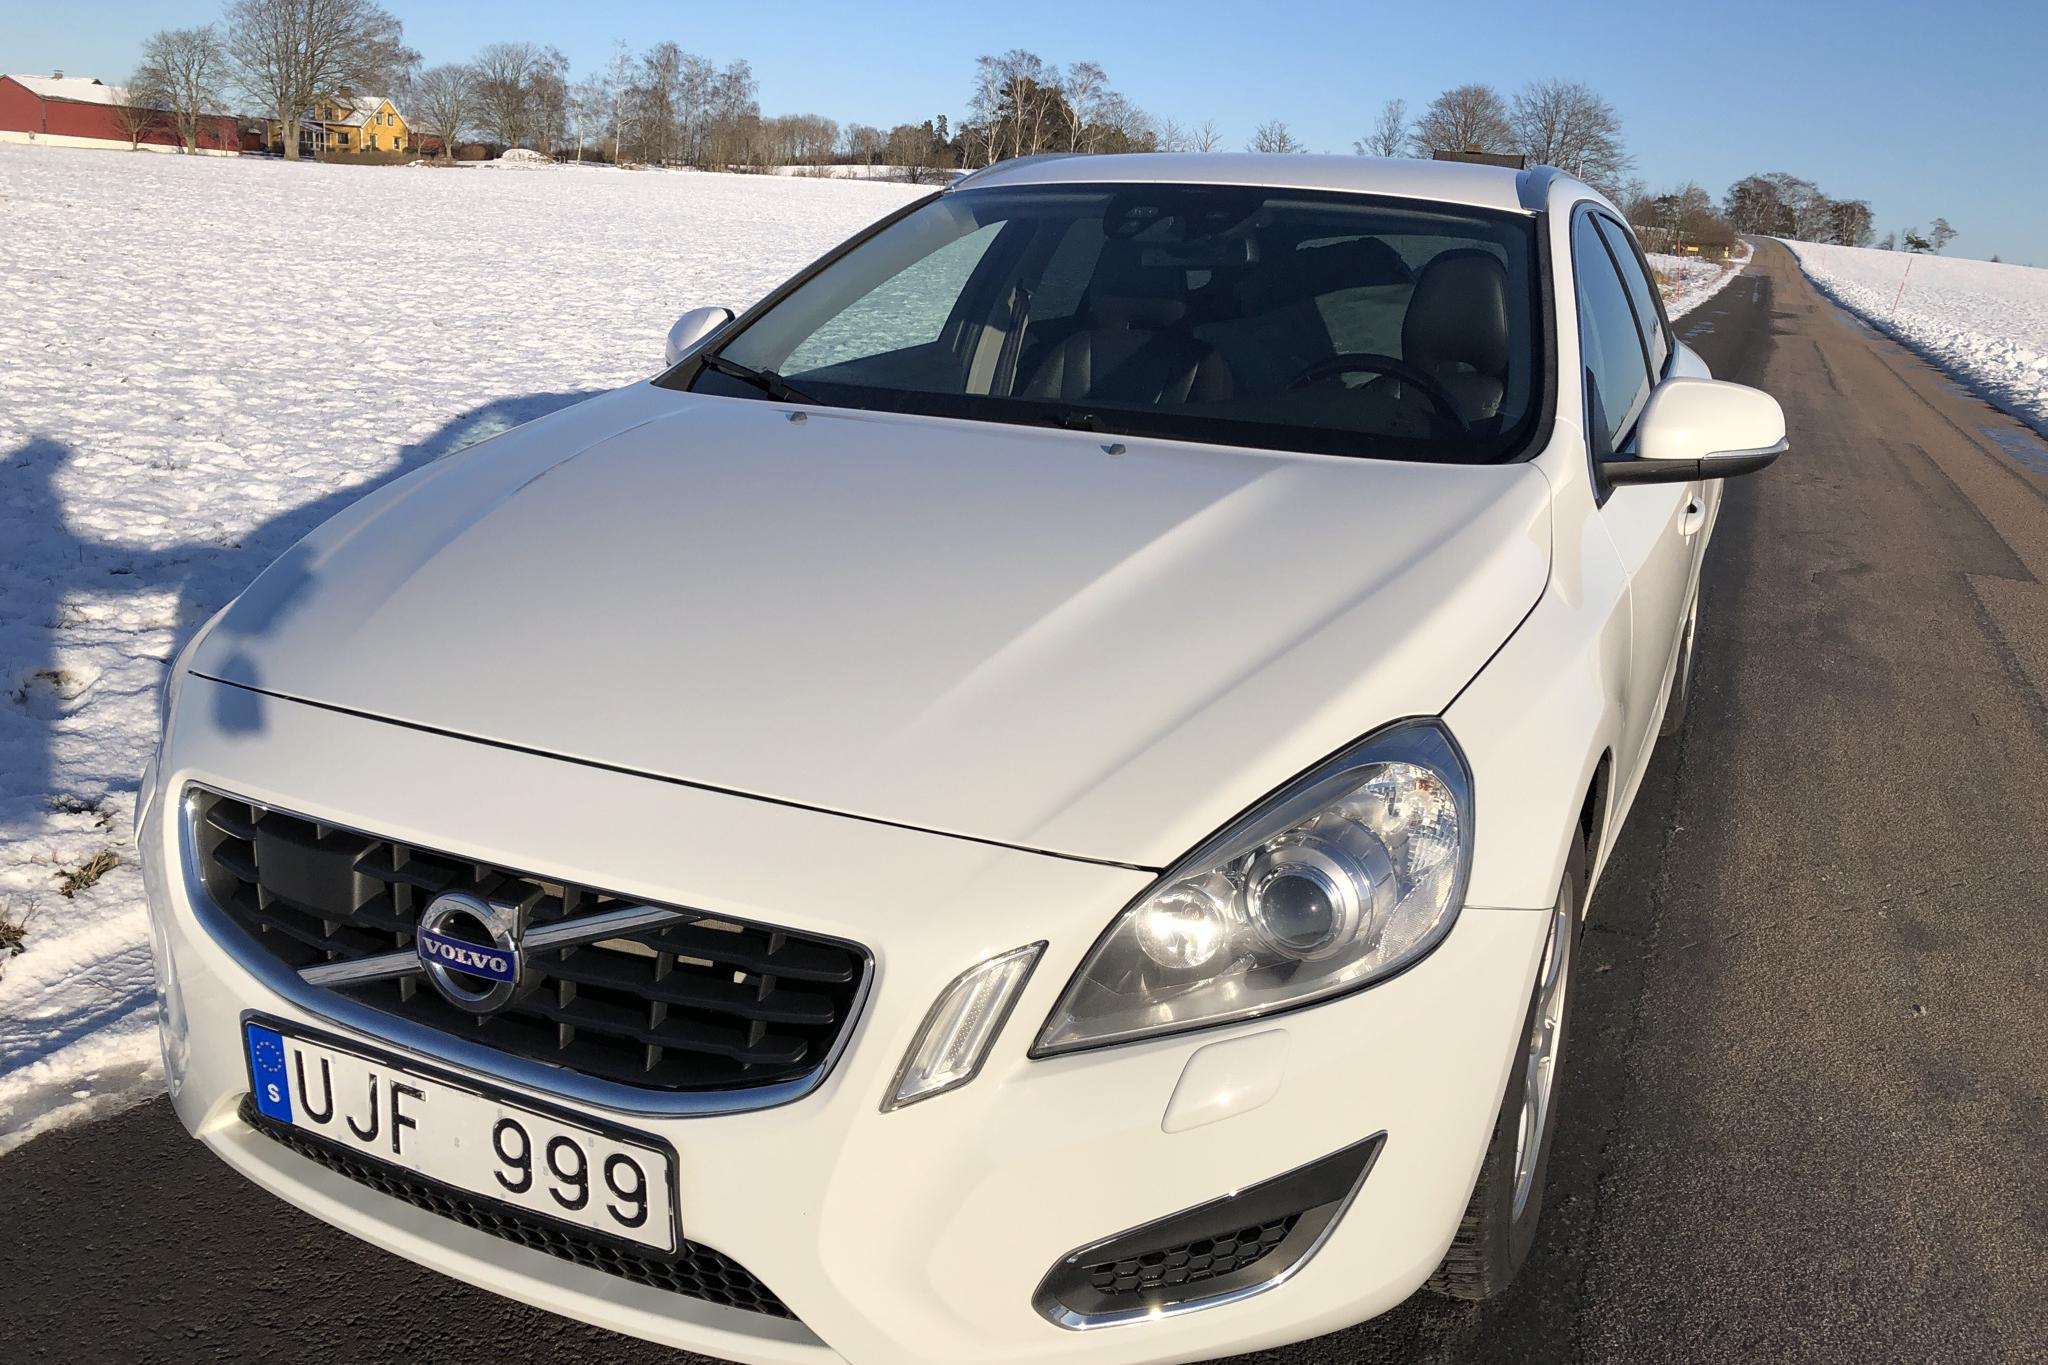 Volvo V60 1.6D DRIVe (115hk) - 153 050 km - Manual - white - 2012